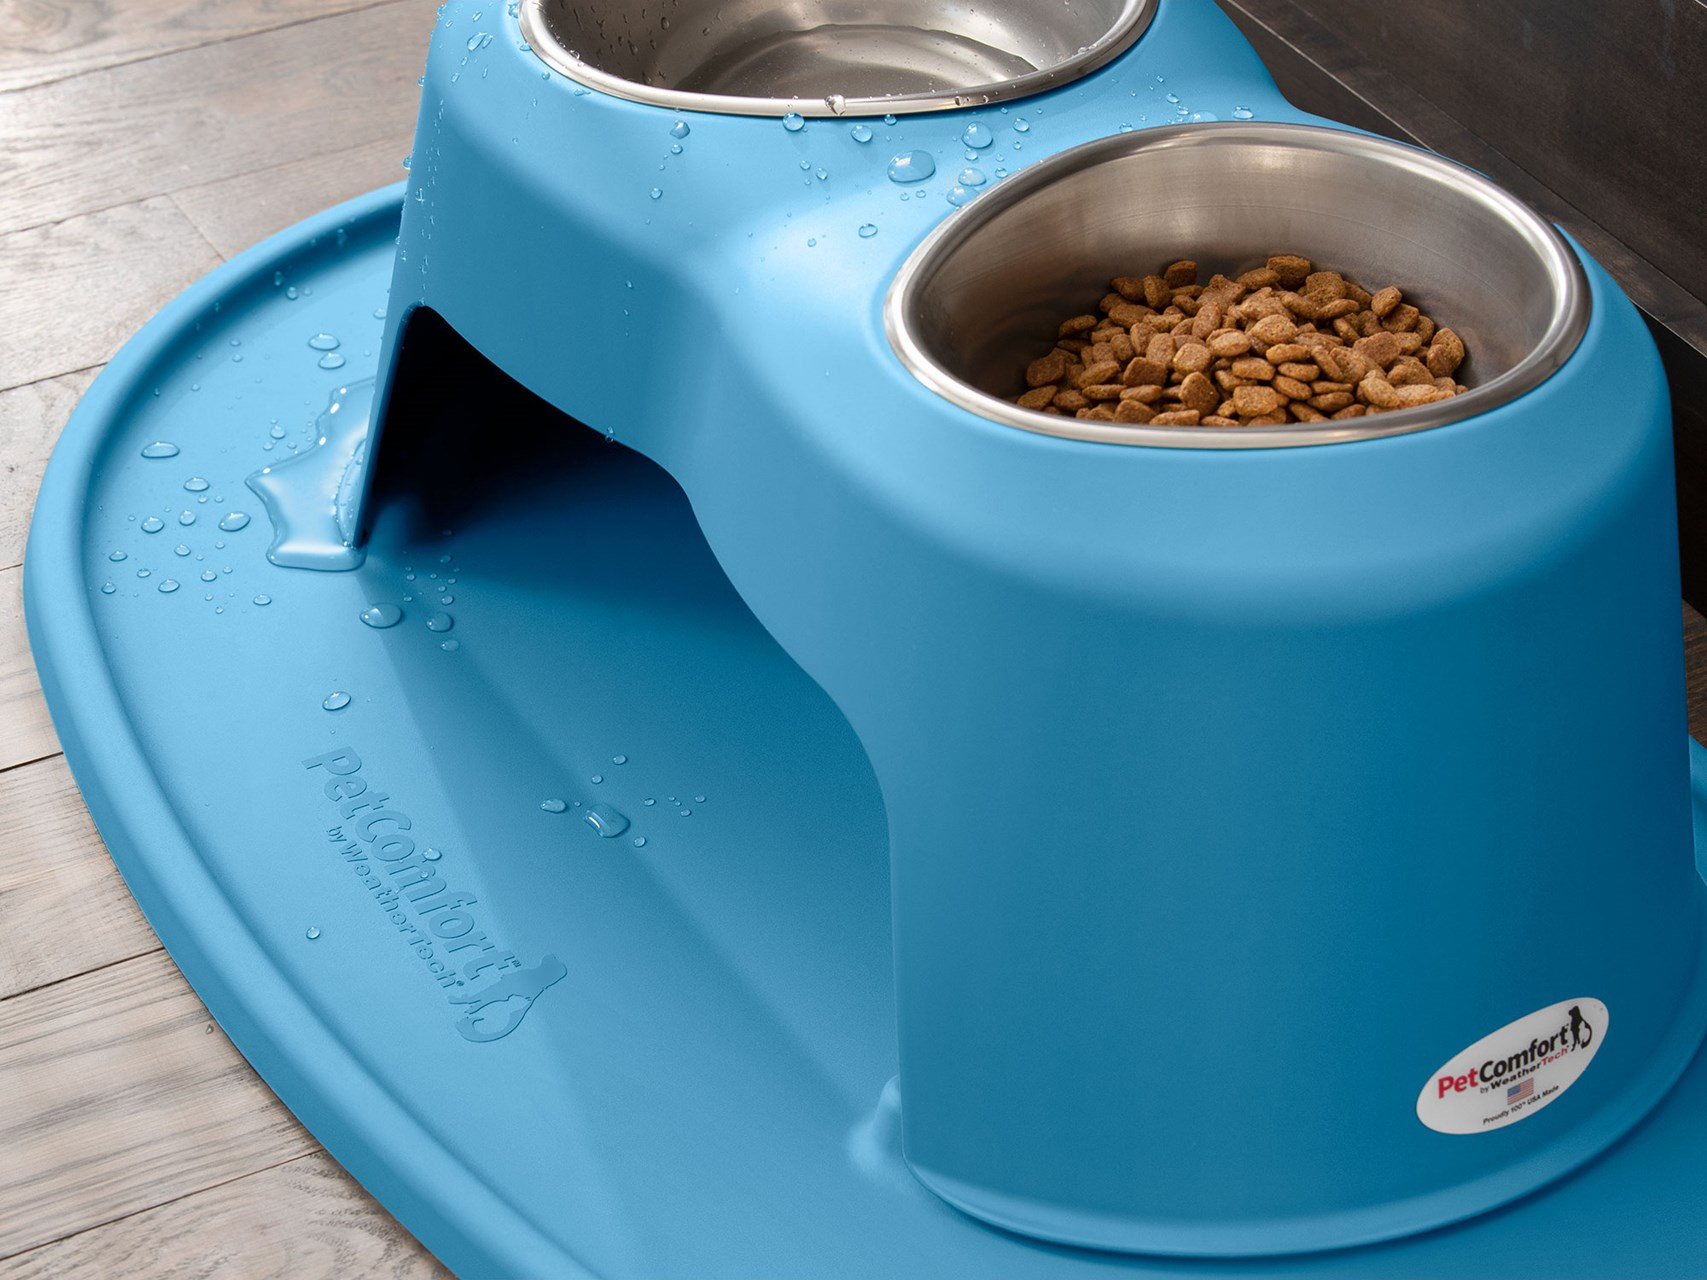 PetComfort_Home_DoubleHigh_Water_food_2_doublehigh